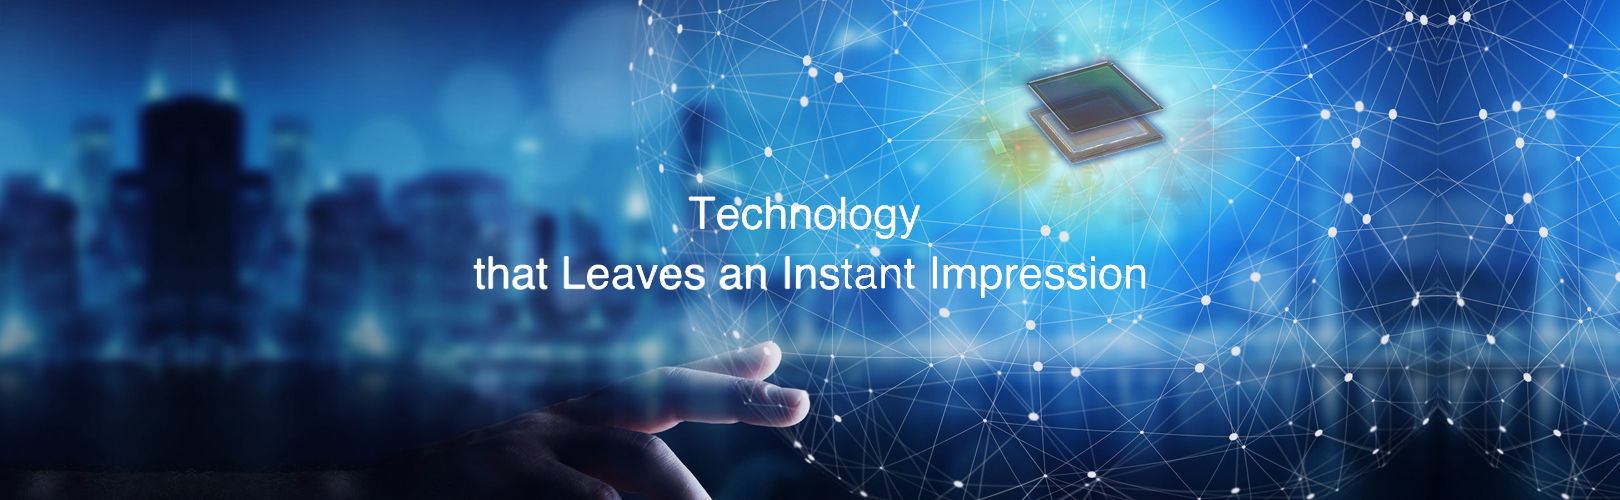 Technology that Leaves an Instant Impression